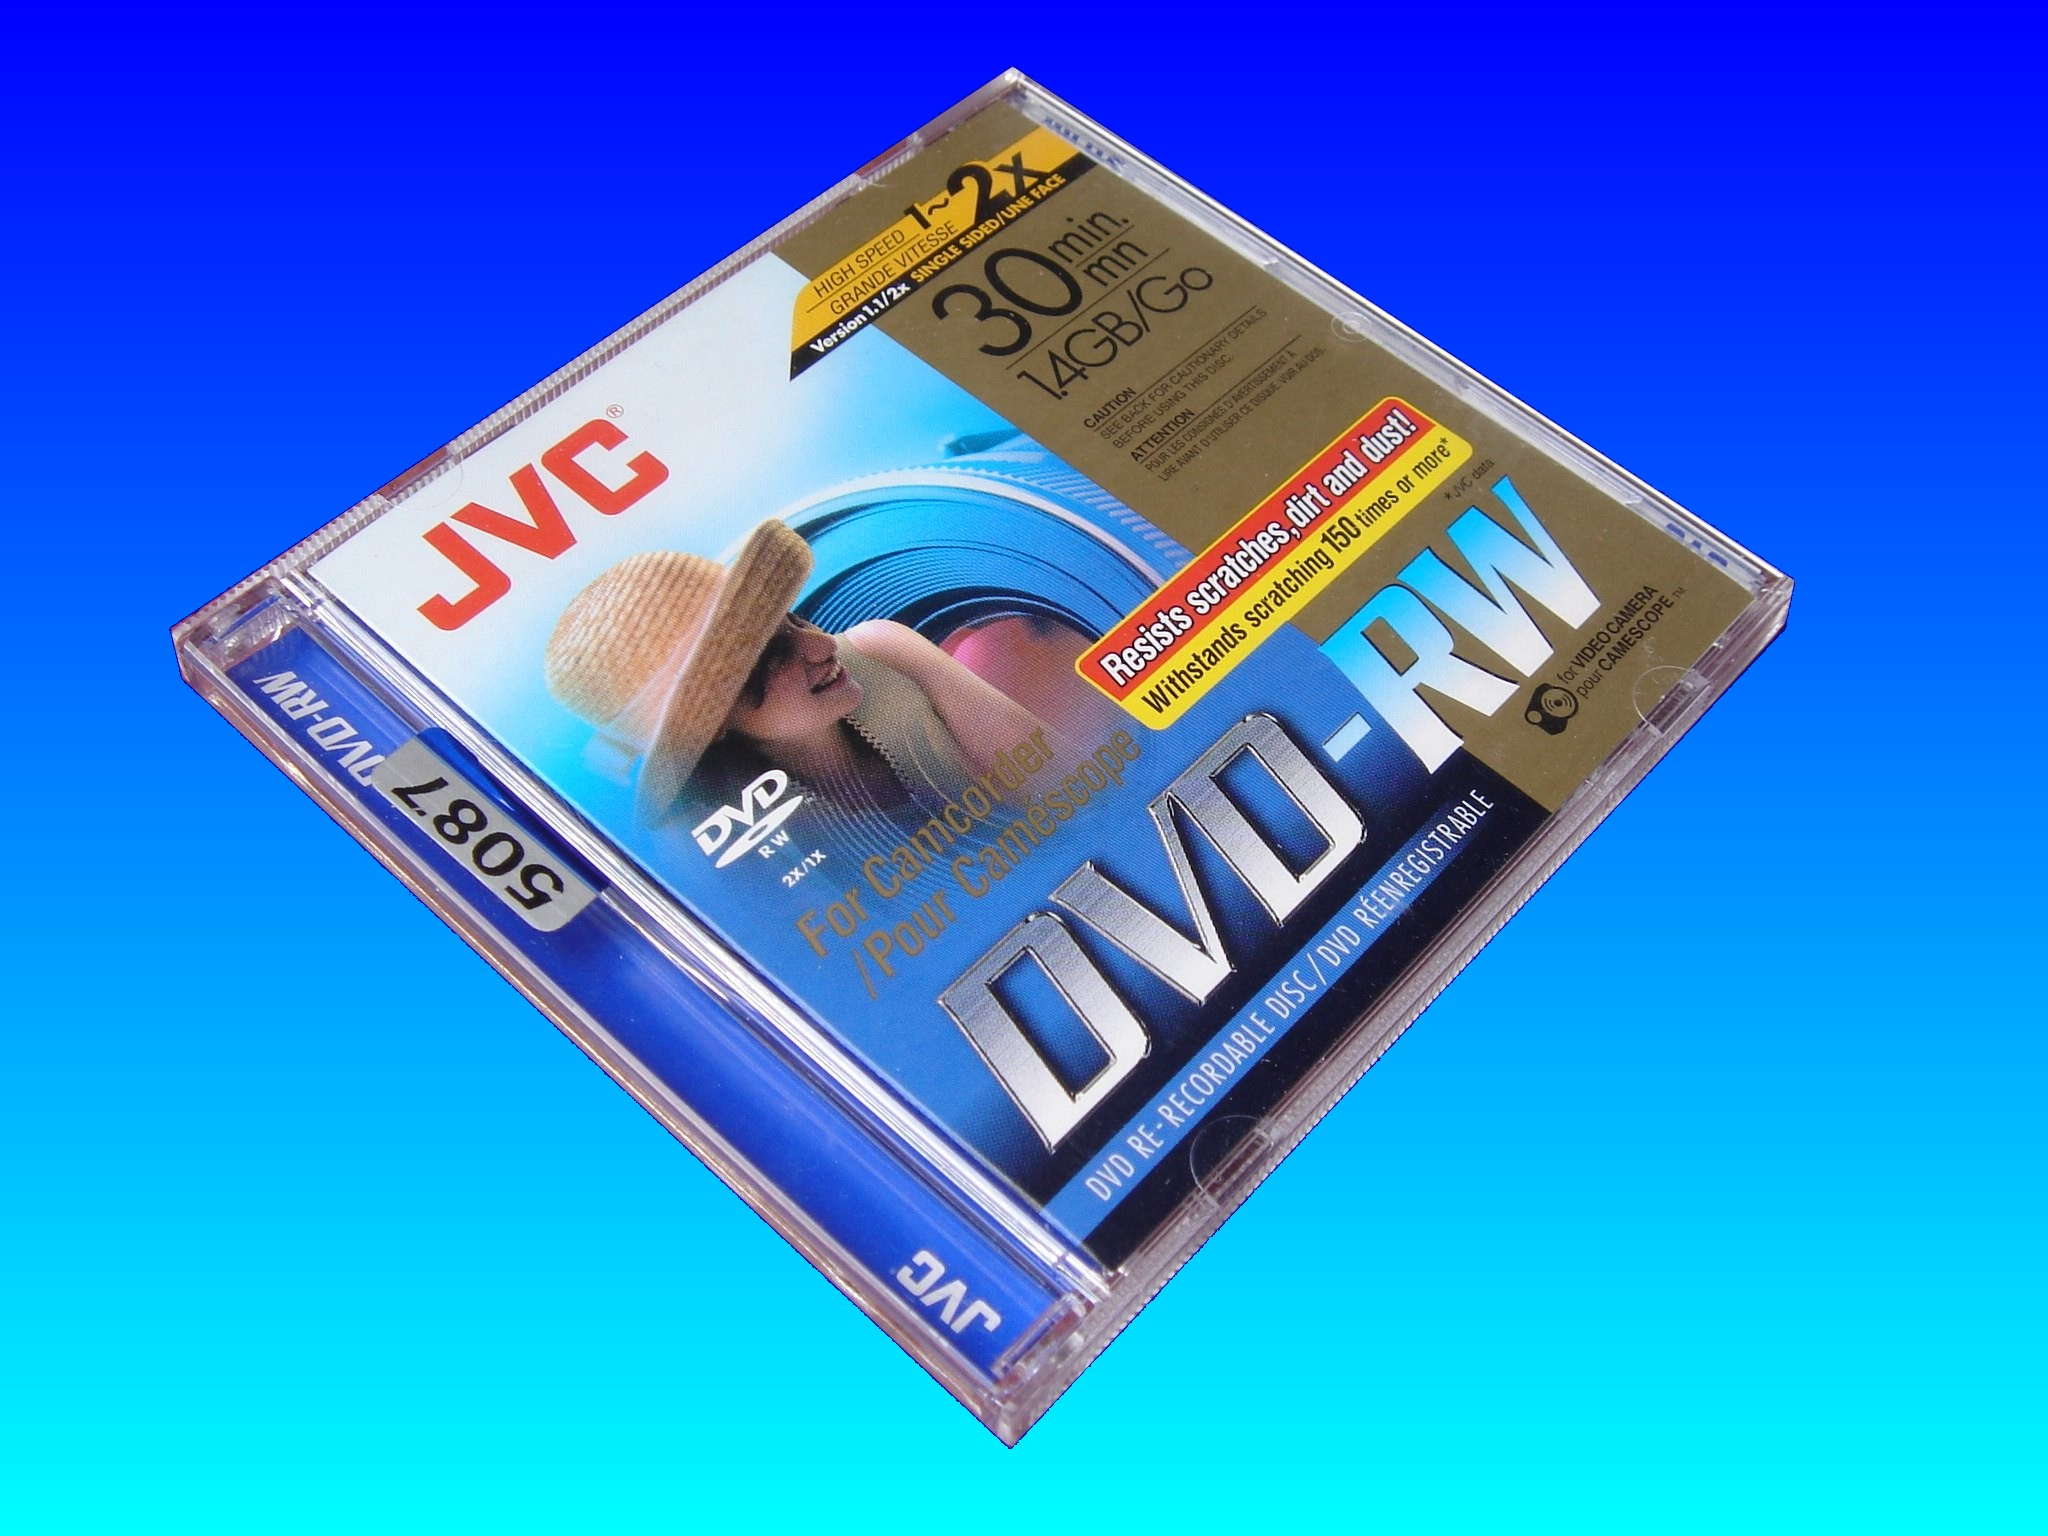 The very popular JVC DVD-RW mini dvd disk. This one was used in an Hitachi camcorder and needed the movie recovering off it.